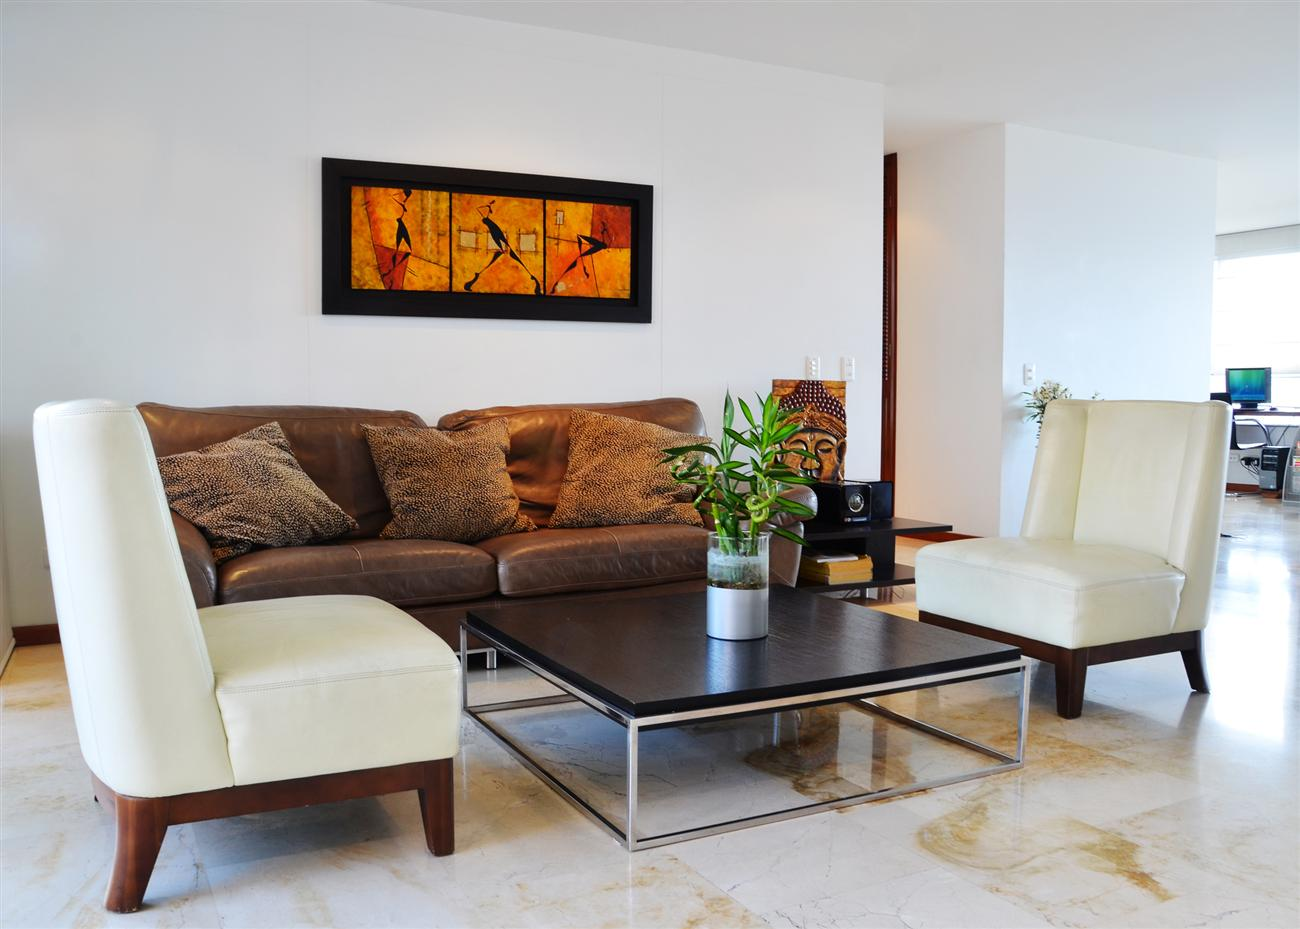 The Apartment Medellin: Medellin's Best Apartment Rentals!